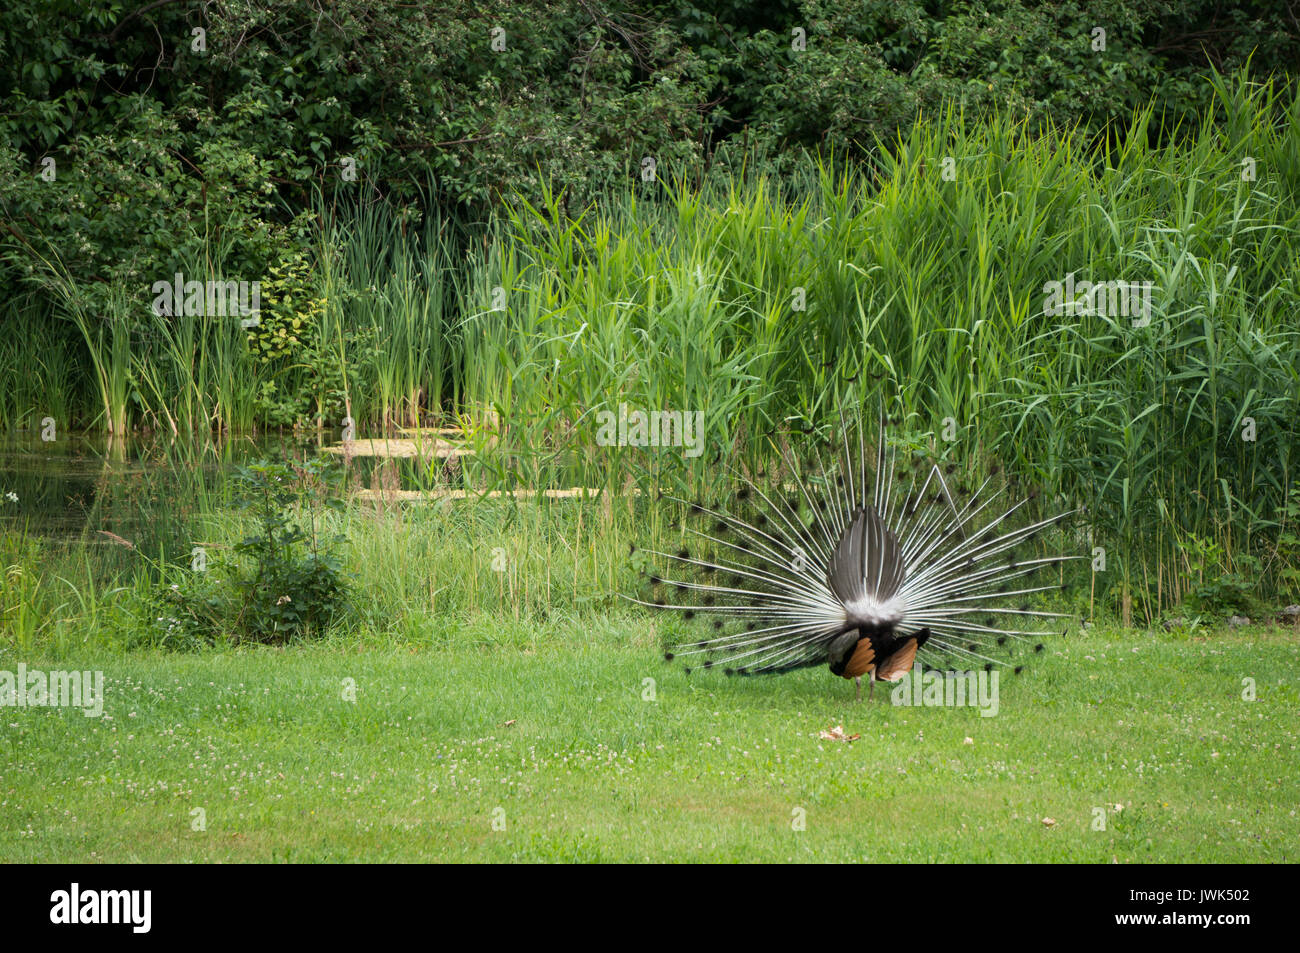 Peacock from behind - Stock Image